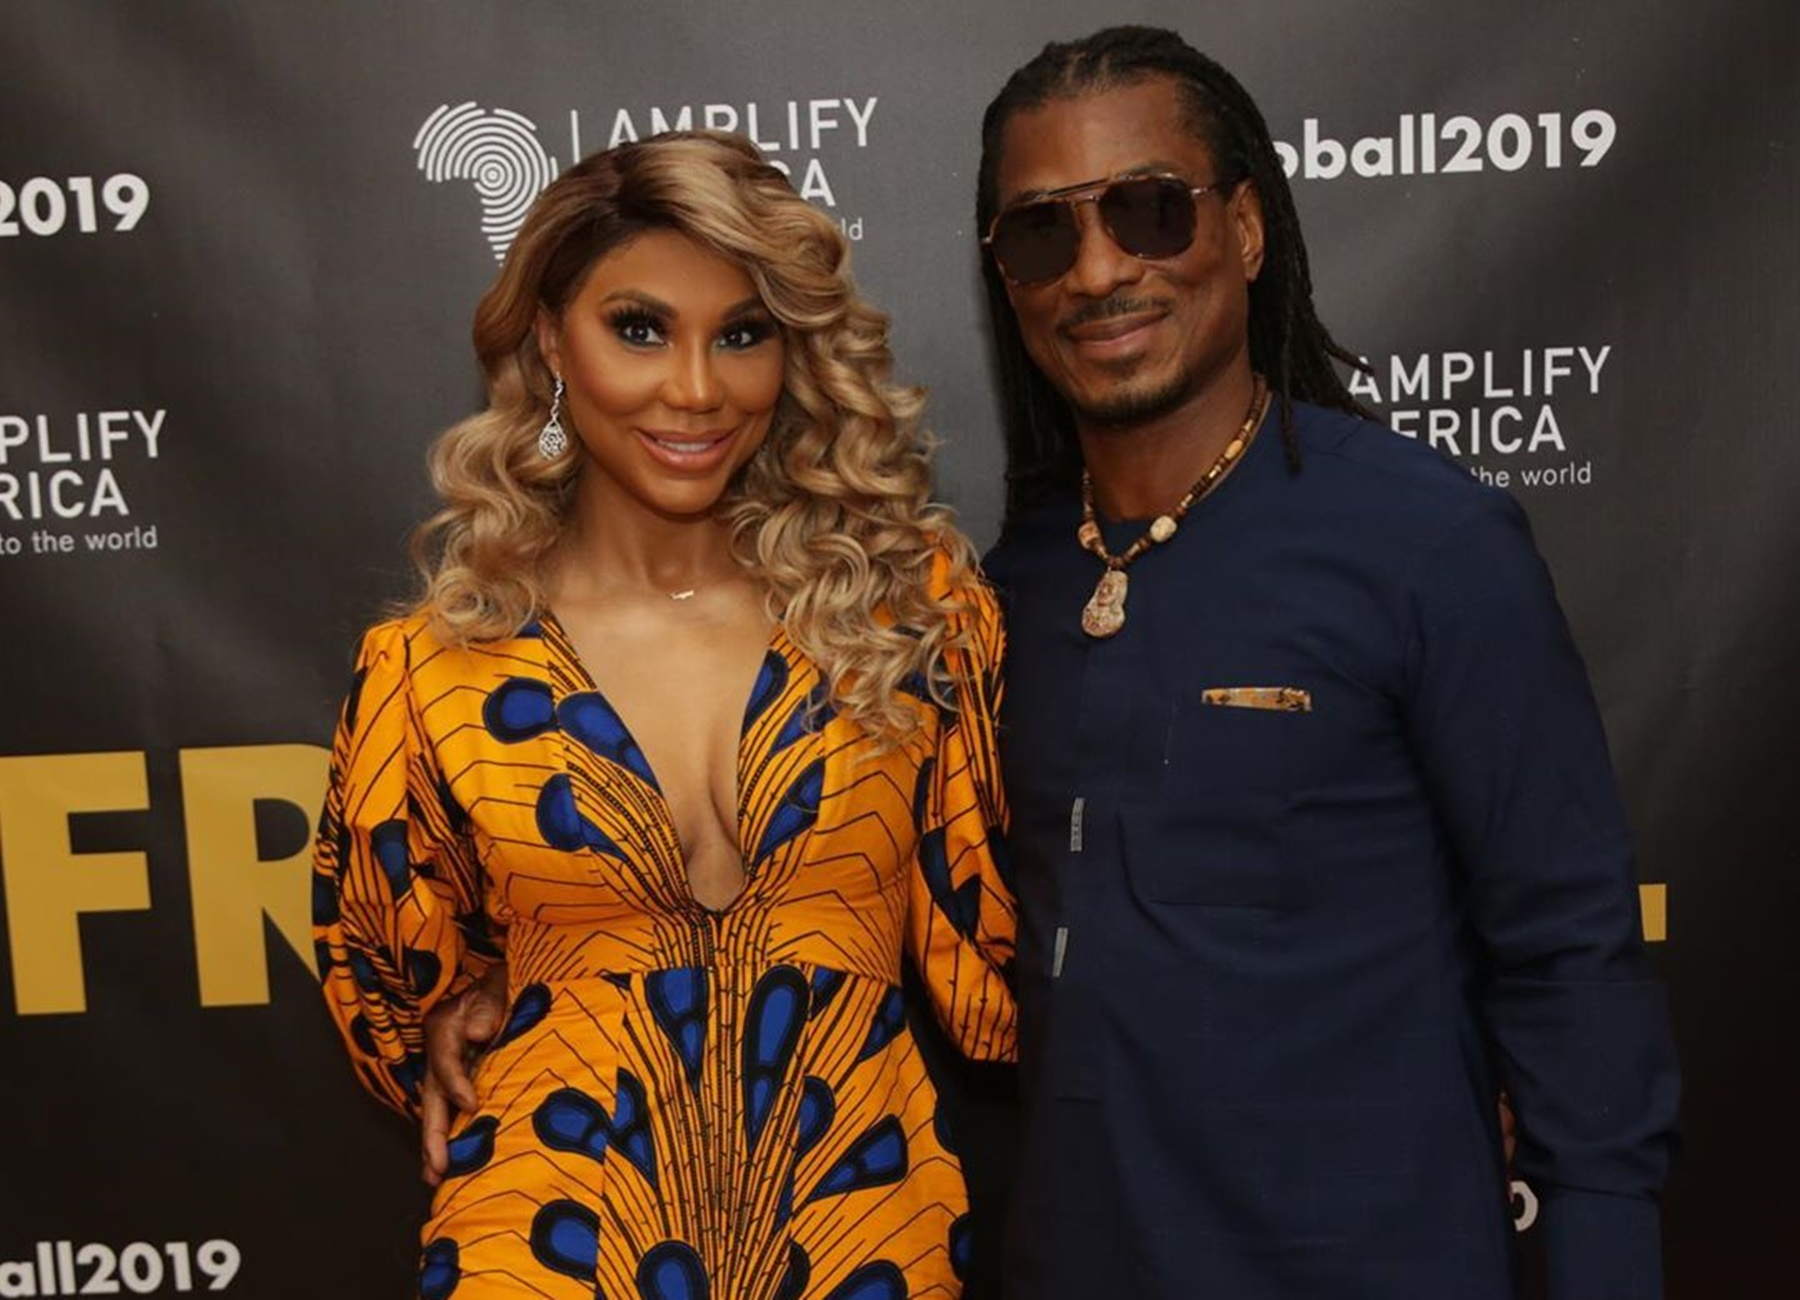 tamar-braxton-and-her-bf-pack-on-the-pda-in-a-hot-video-shes-showing-off-her-amazing-beach-body-and-david-gets-flirty-in-the-comments